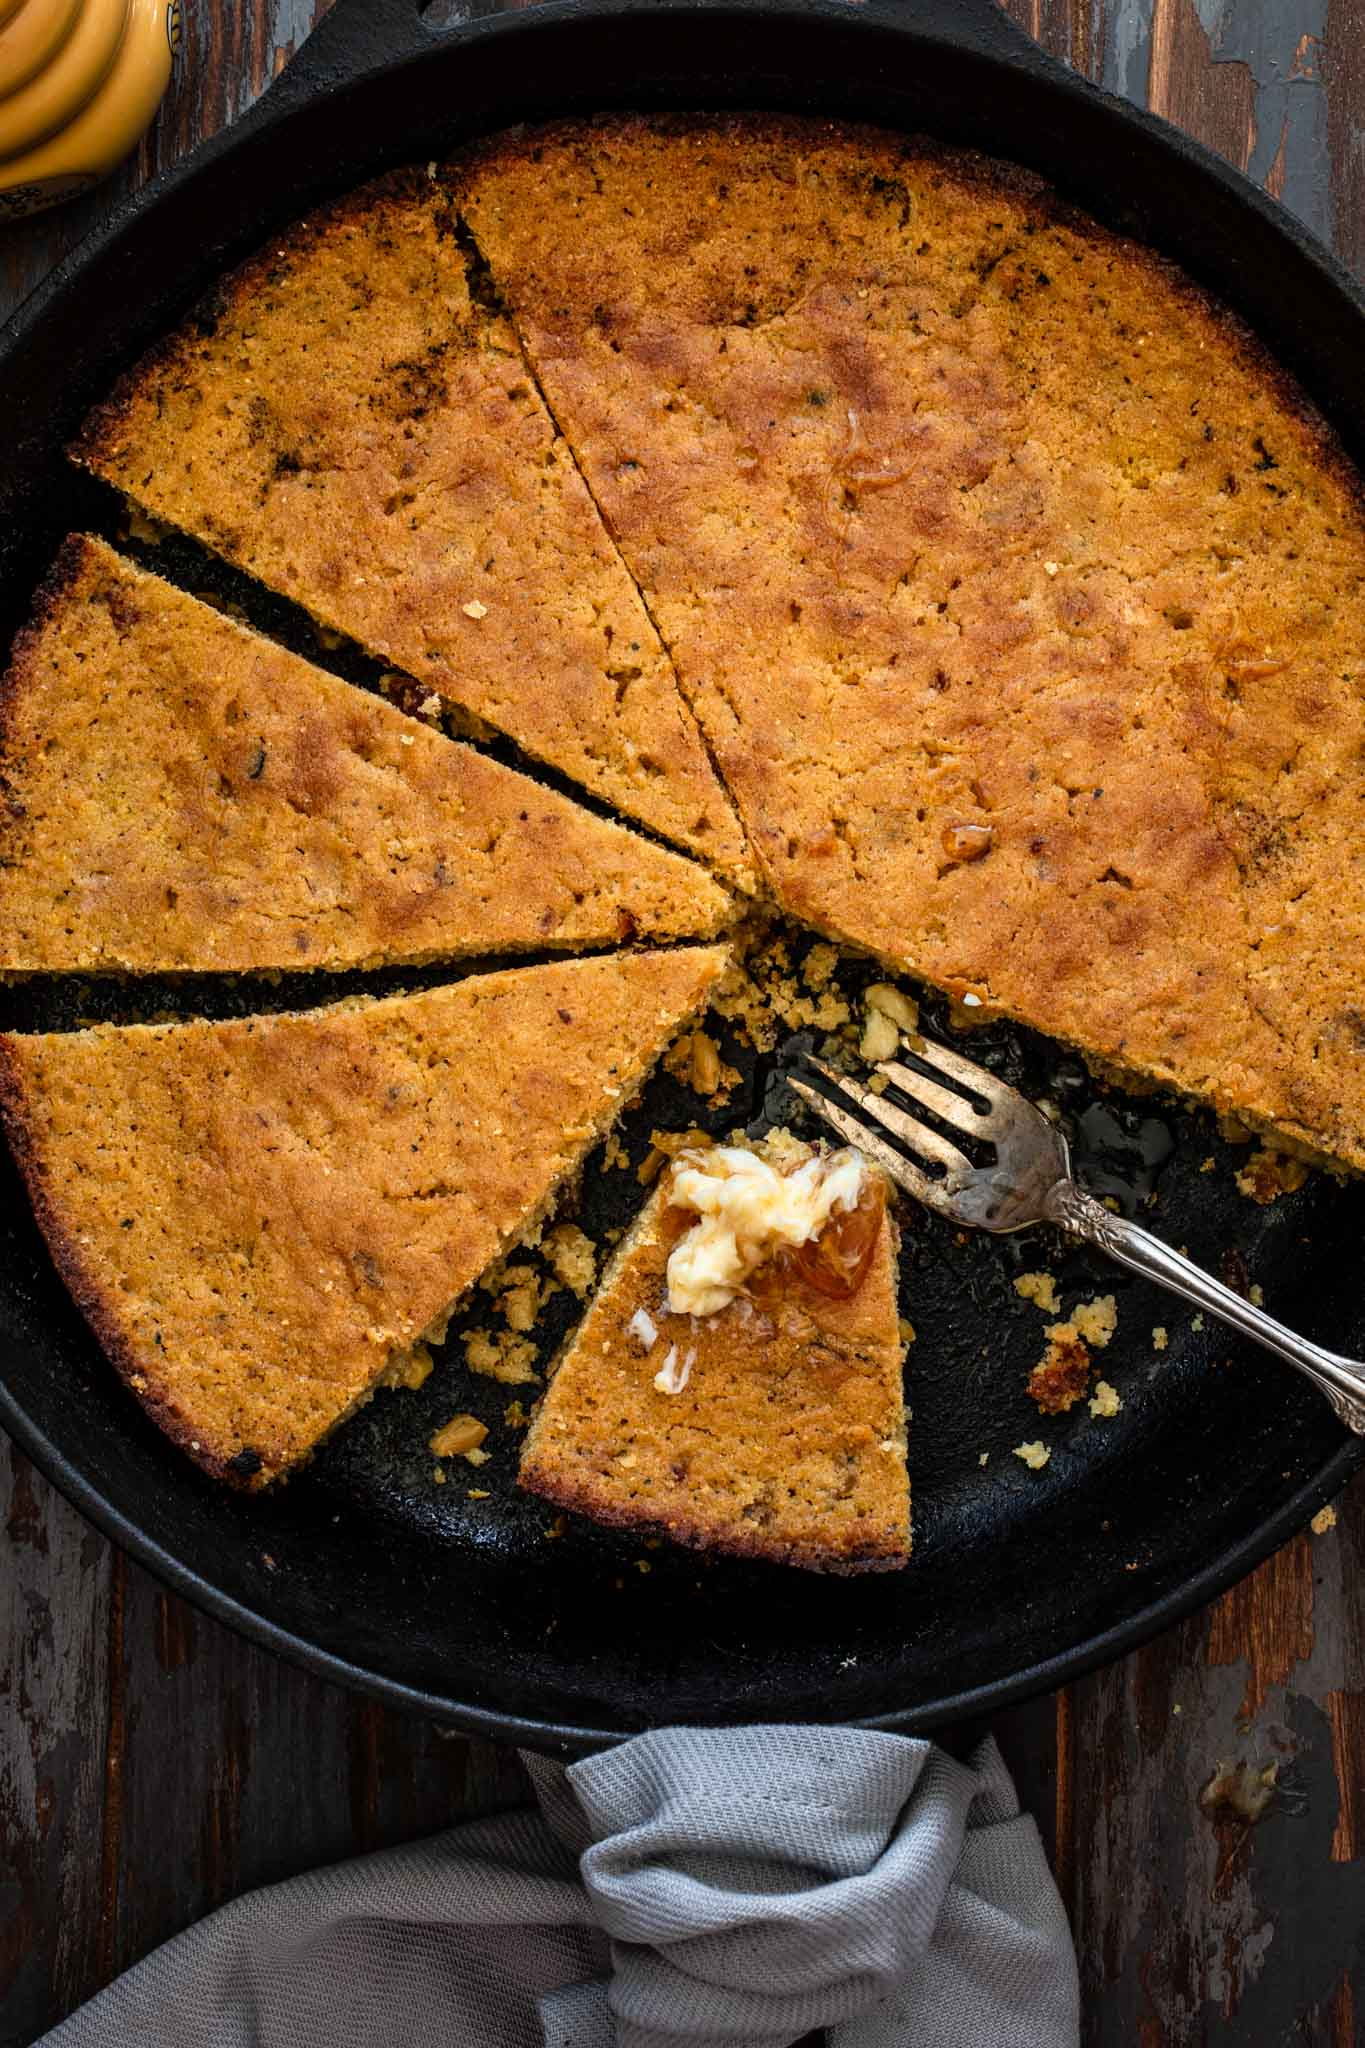 Sliced cornbread in a skillet